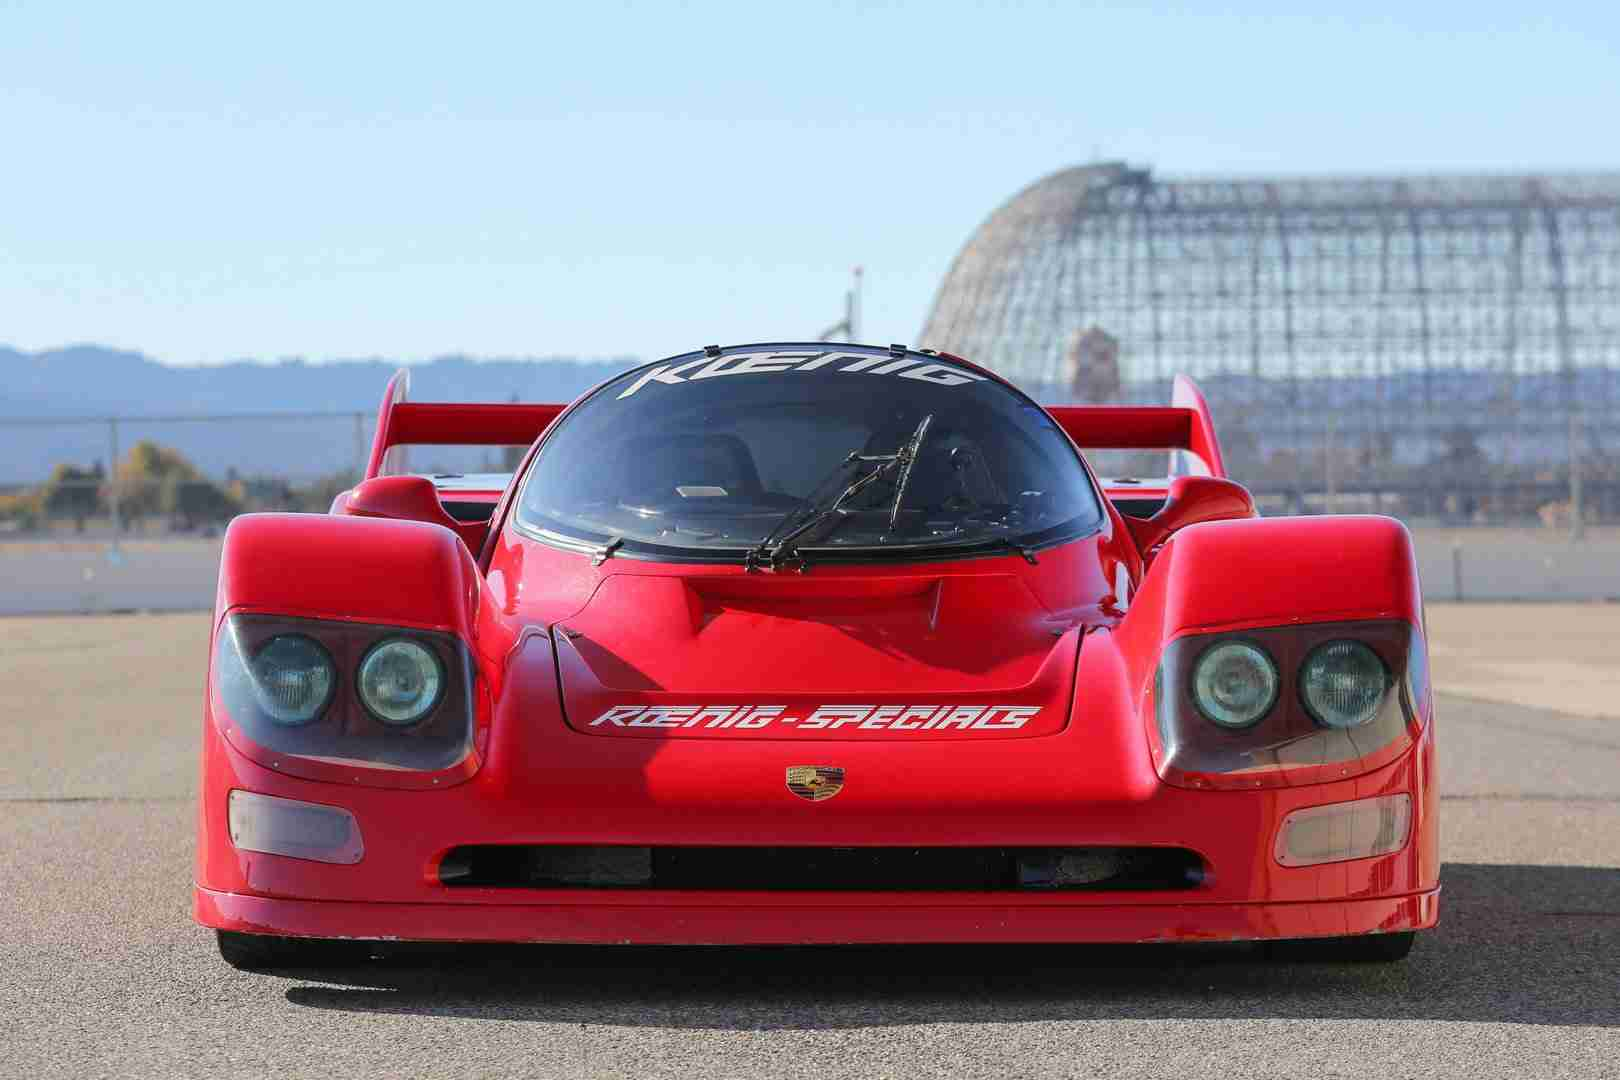 A 1991 Porsche Koenig Specials C62 has just gone up on sale for U.S. $995,000, a perfectly justified price given its rarity (three units and five mock-ups produced in total).